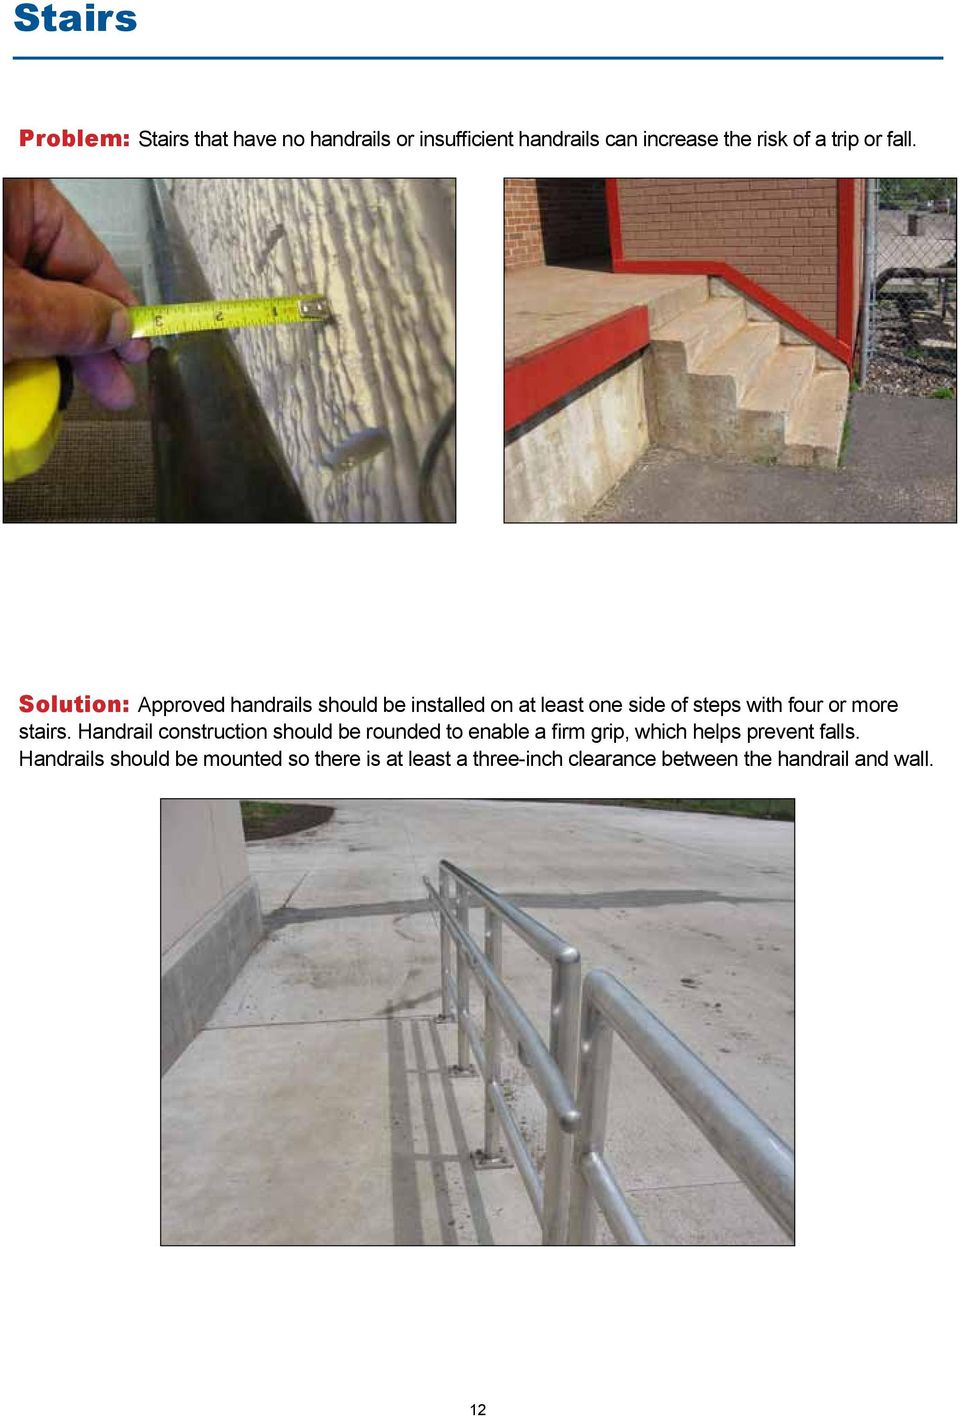 Solution: Approved handrails should be installed on at least one side of steps with four or more stairs.